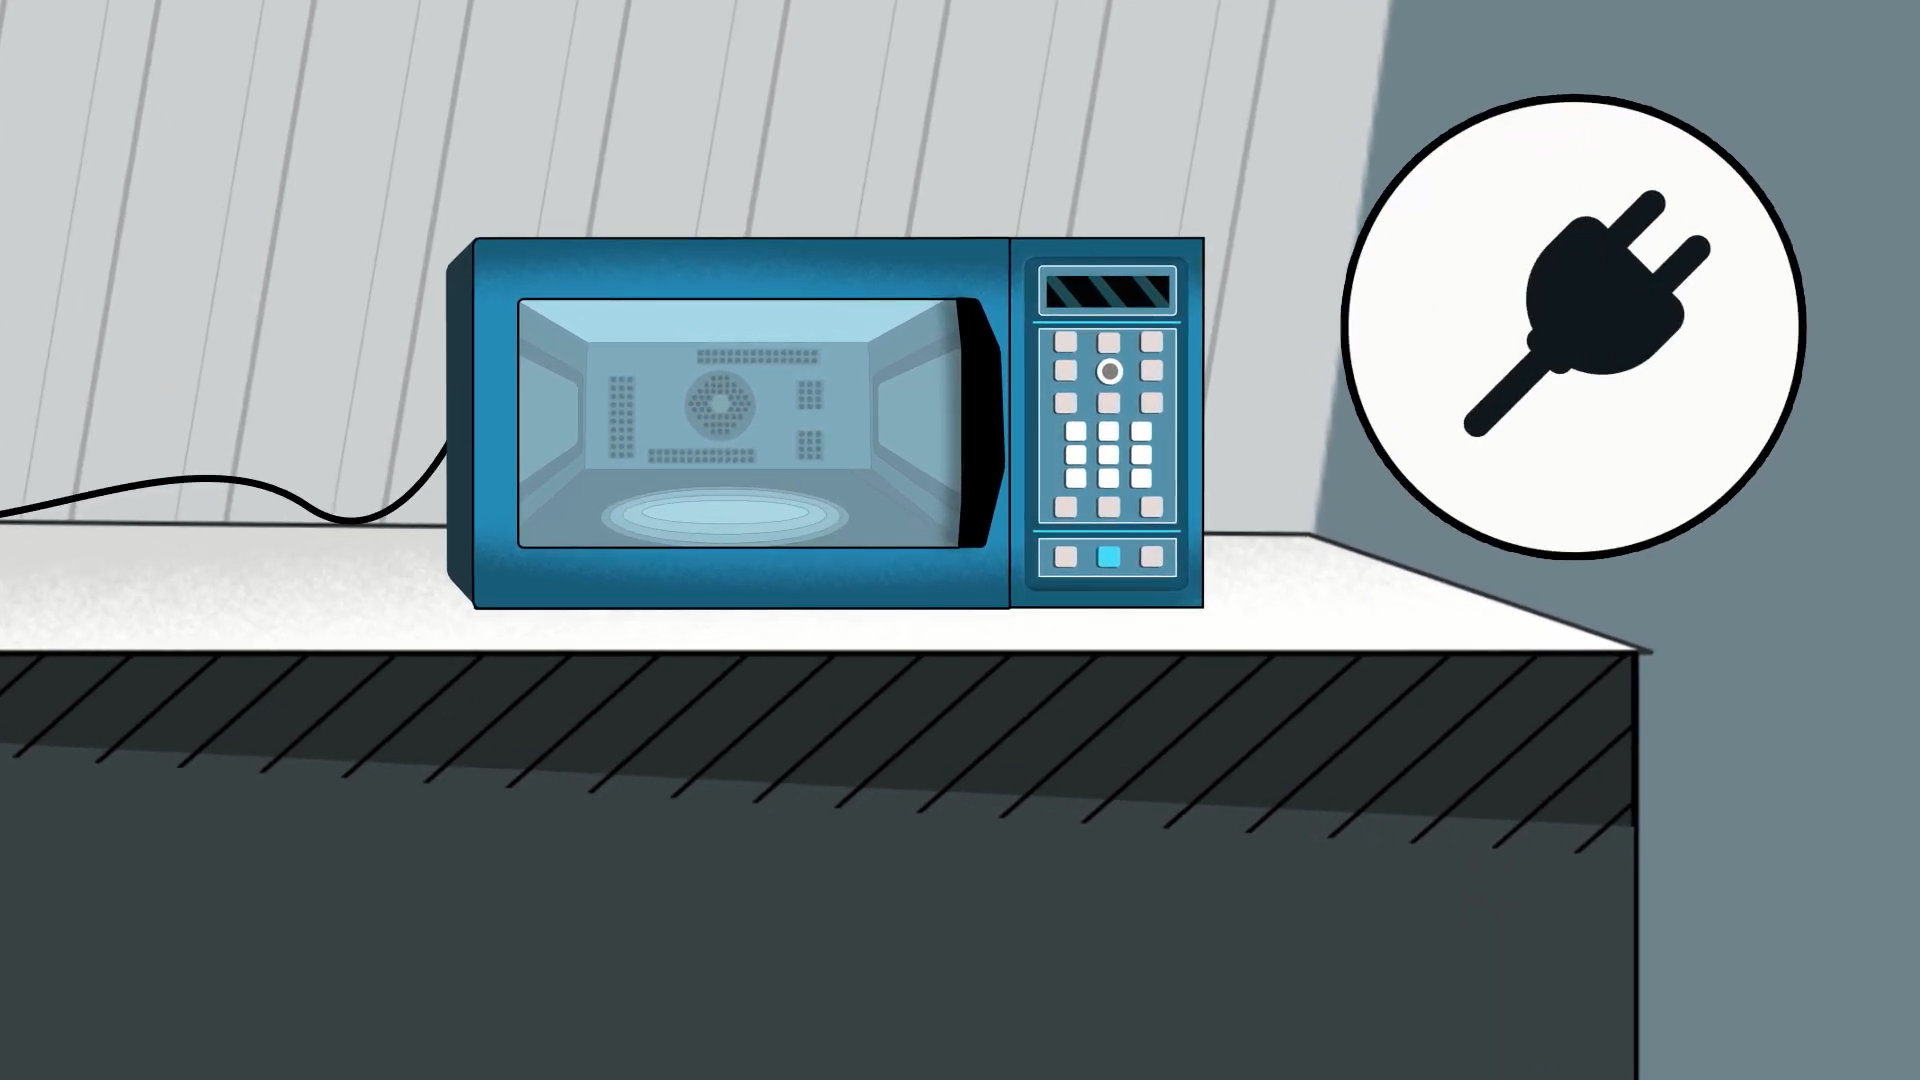 Illustration of the Amazon Smart Oven sitting on top of a counter. There is a electrical cord plug icon beside it.